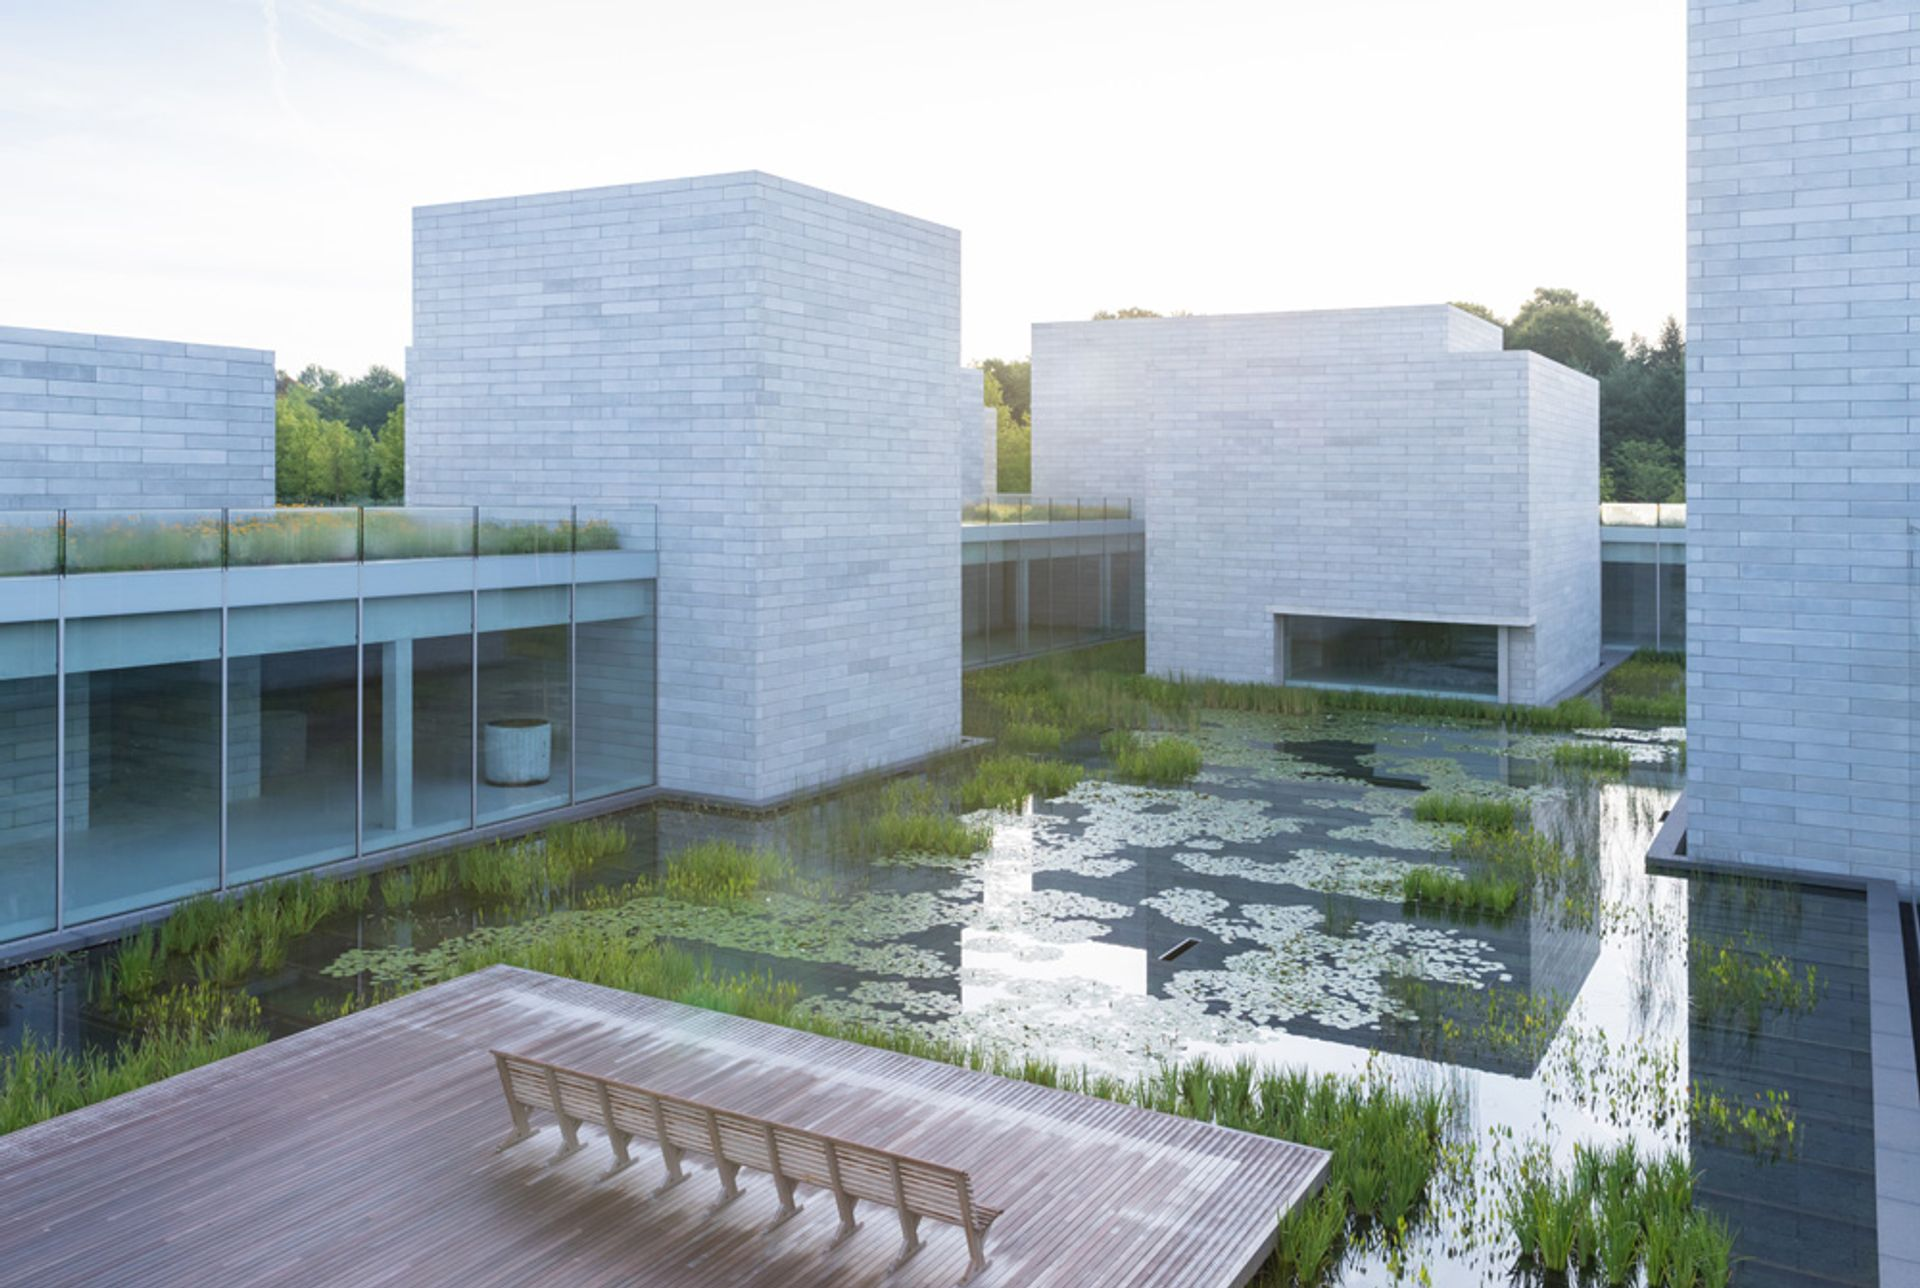 The water court at the Pavilions, opening at Glenstone on 4 October Iwan Baan; courtesy of Glenstone Museum